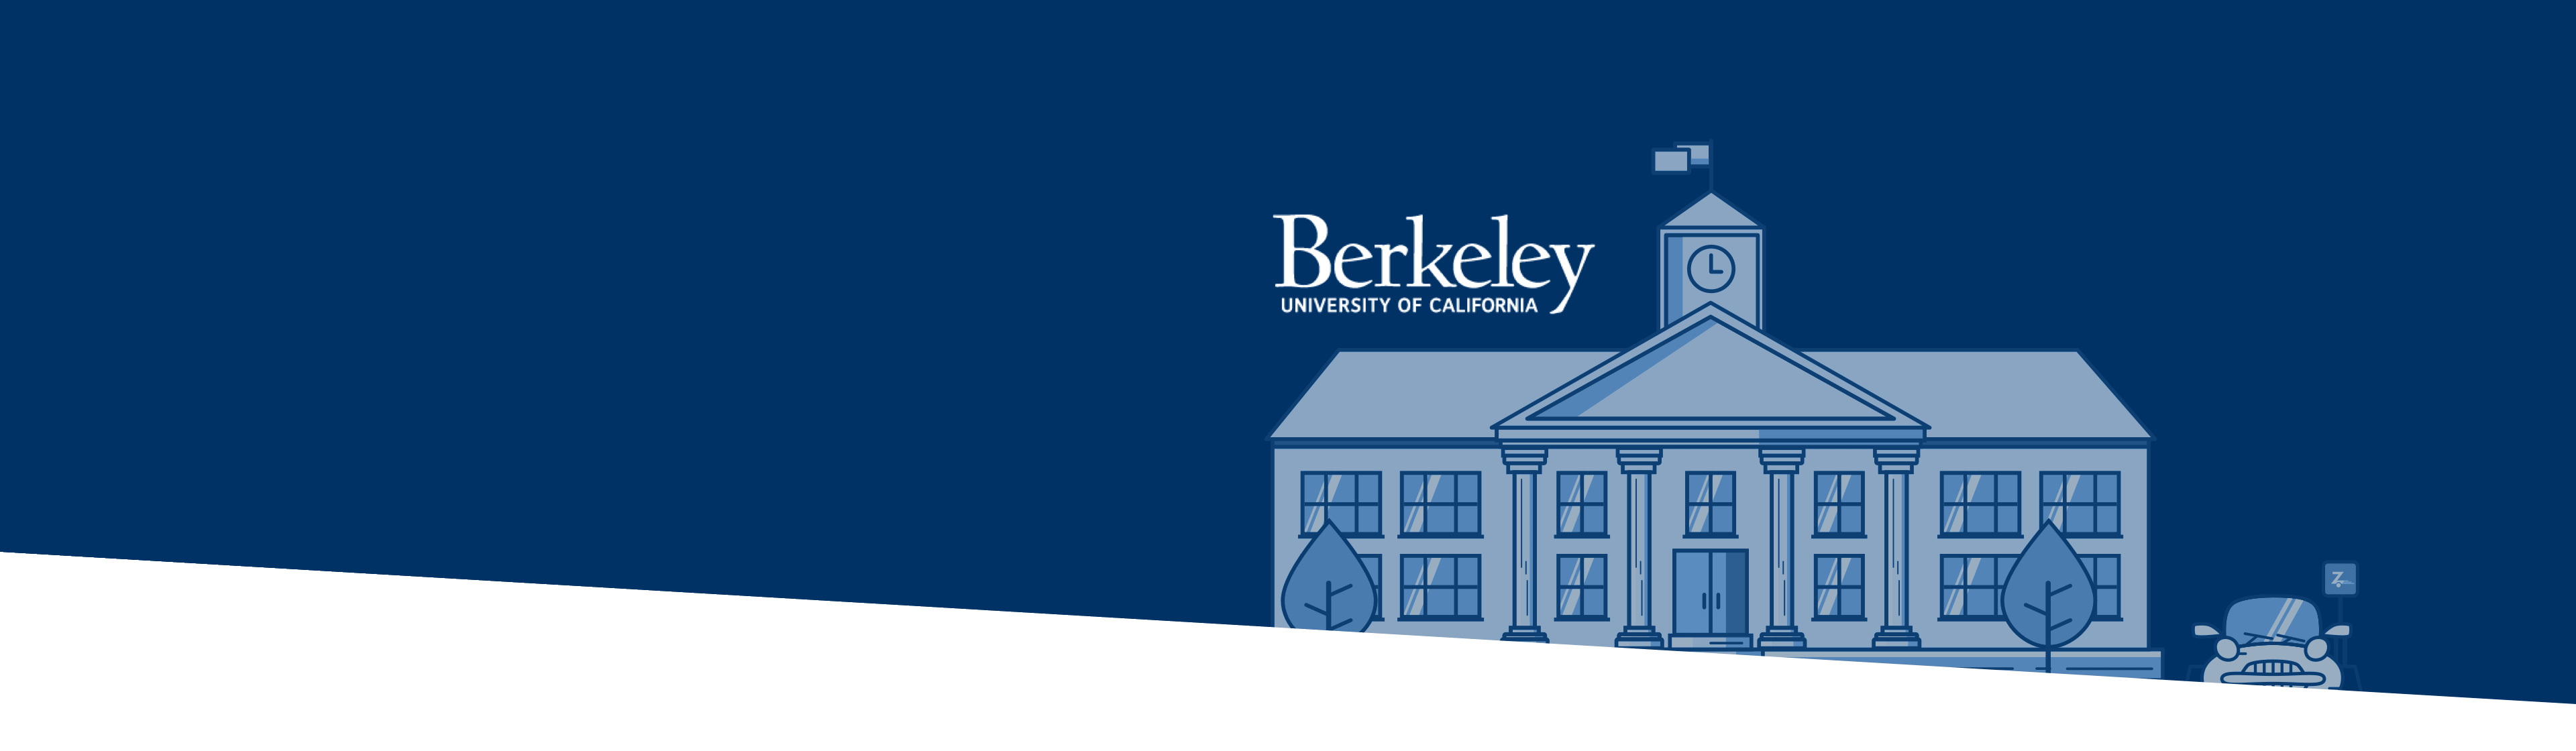 UC Berkeley buildings and logo